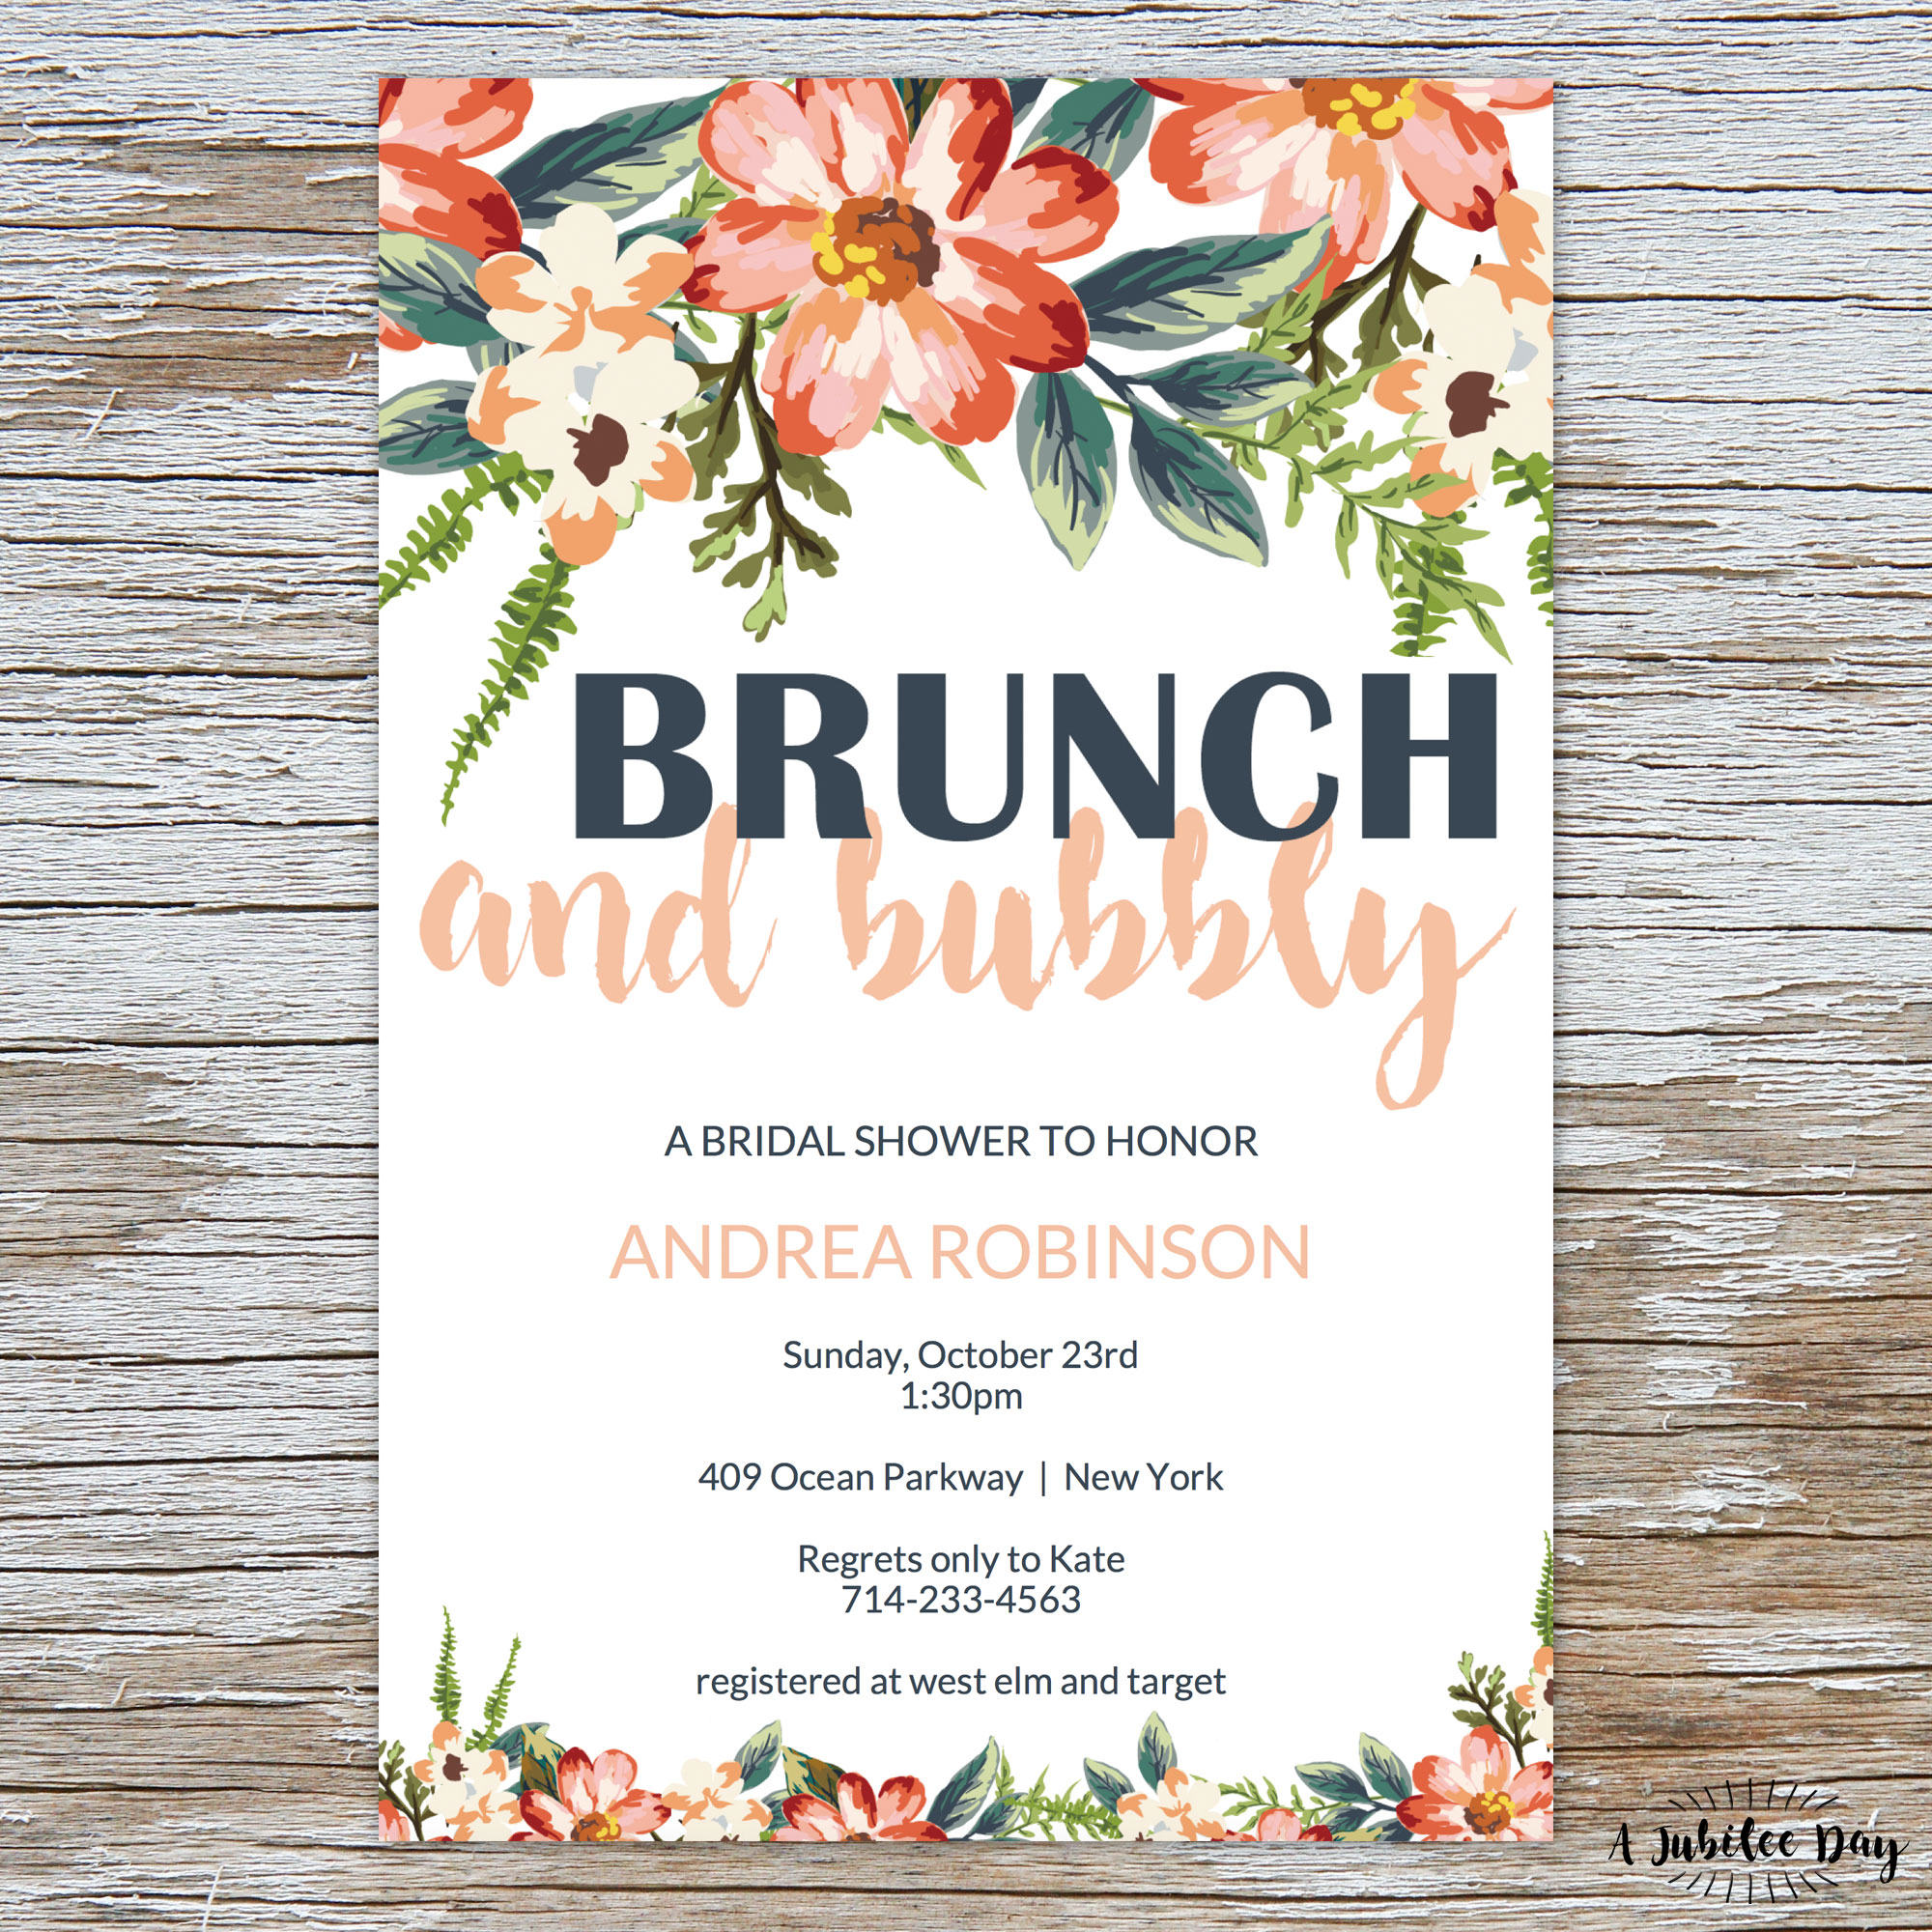 ec293d48fbe0 Brunch and Bubbly Bridal Shower Invitation - A Jubilee Day